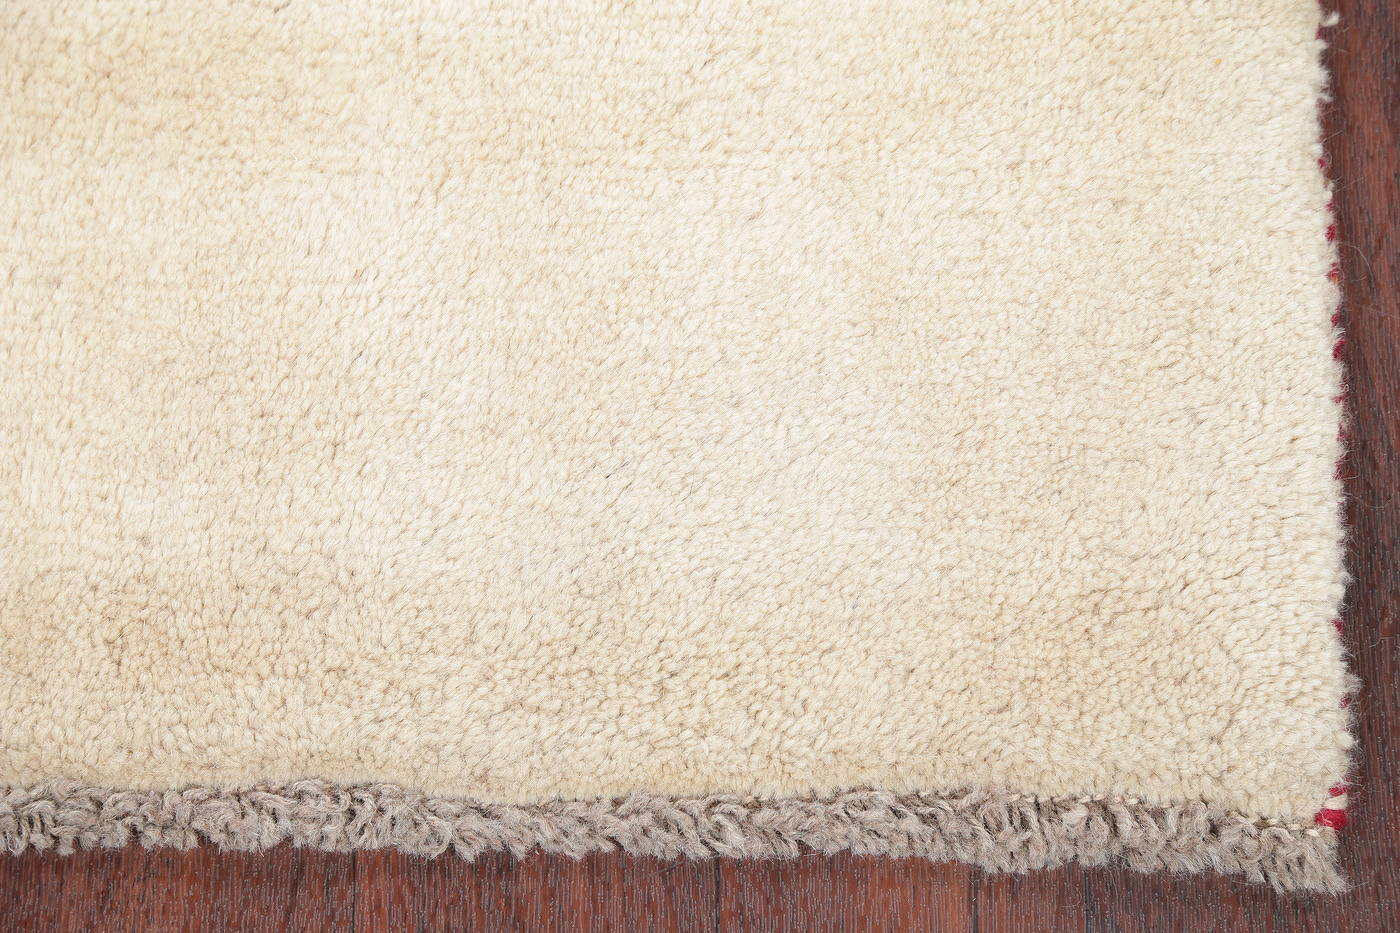 Hand-Knotted Solid Ivory Gabbeh Shiraz Persian Runner Rug 3x6 image 6